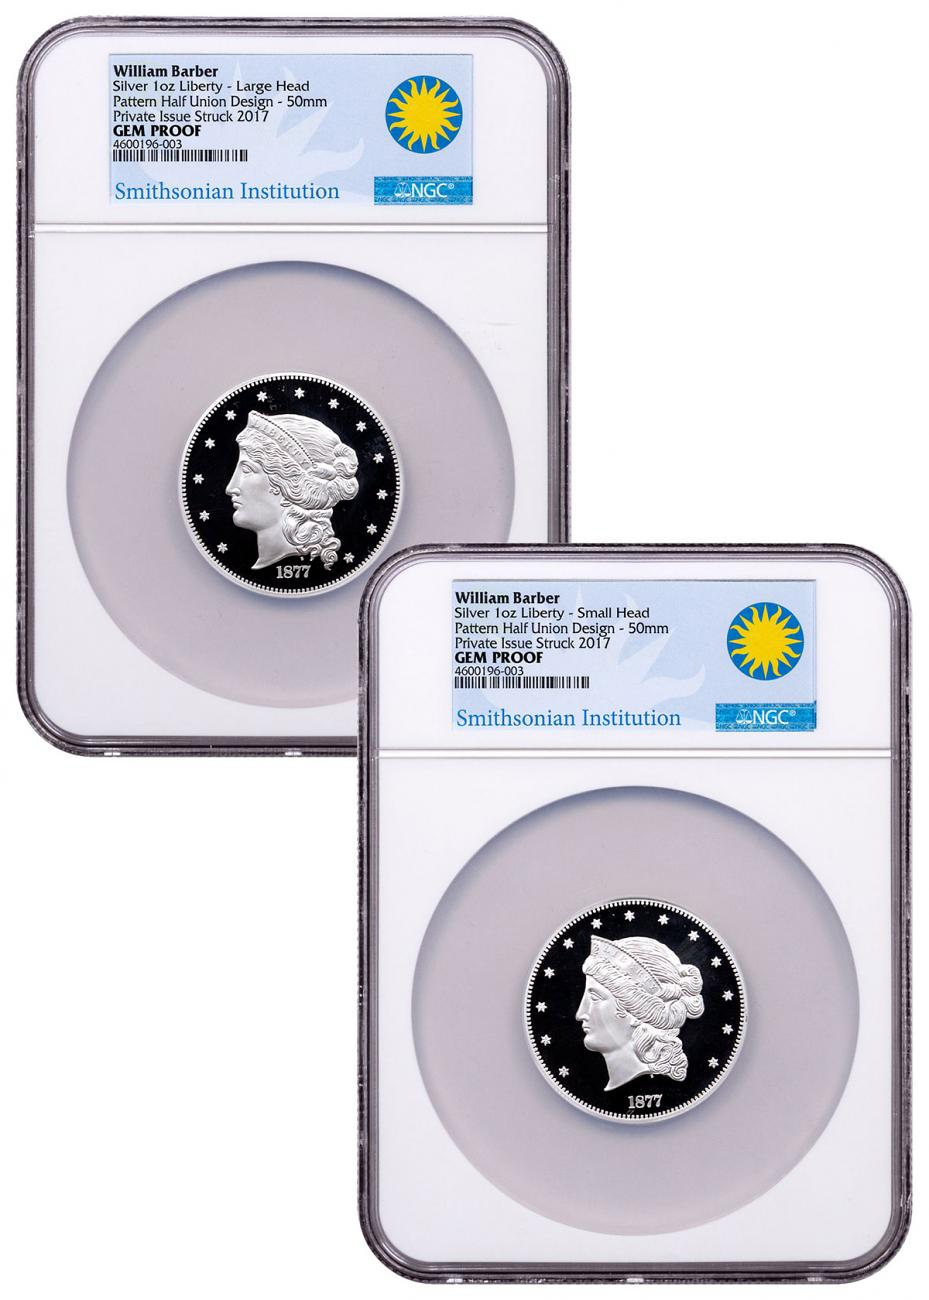 2-Medal Set - (2017) Smithsonian - William Barber 1877 $50 Half-Union Pattern 1 oz Silver Proof Medal NGC GEM Proof UC Exclusive Smithsonian Label